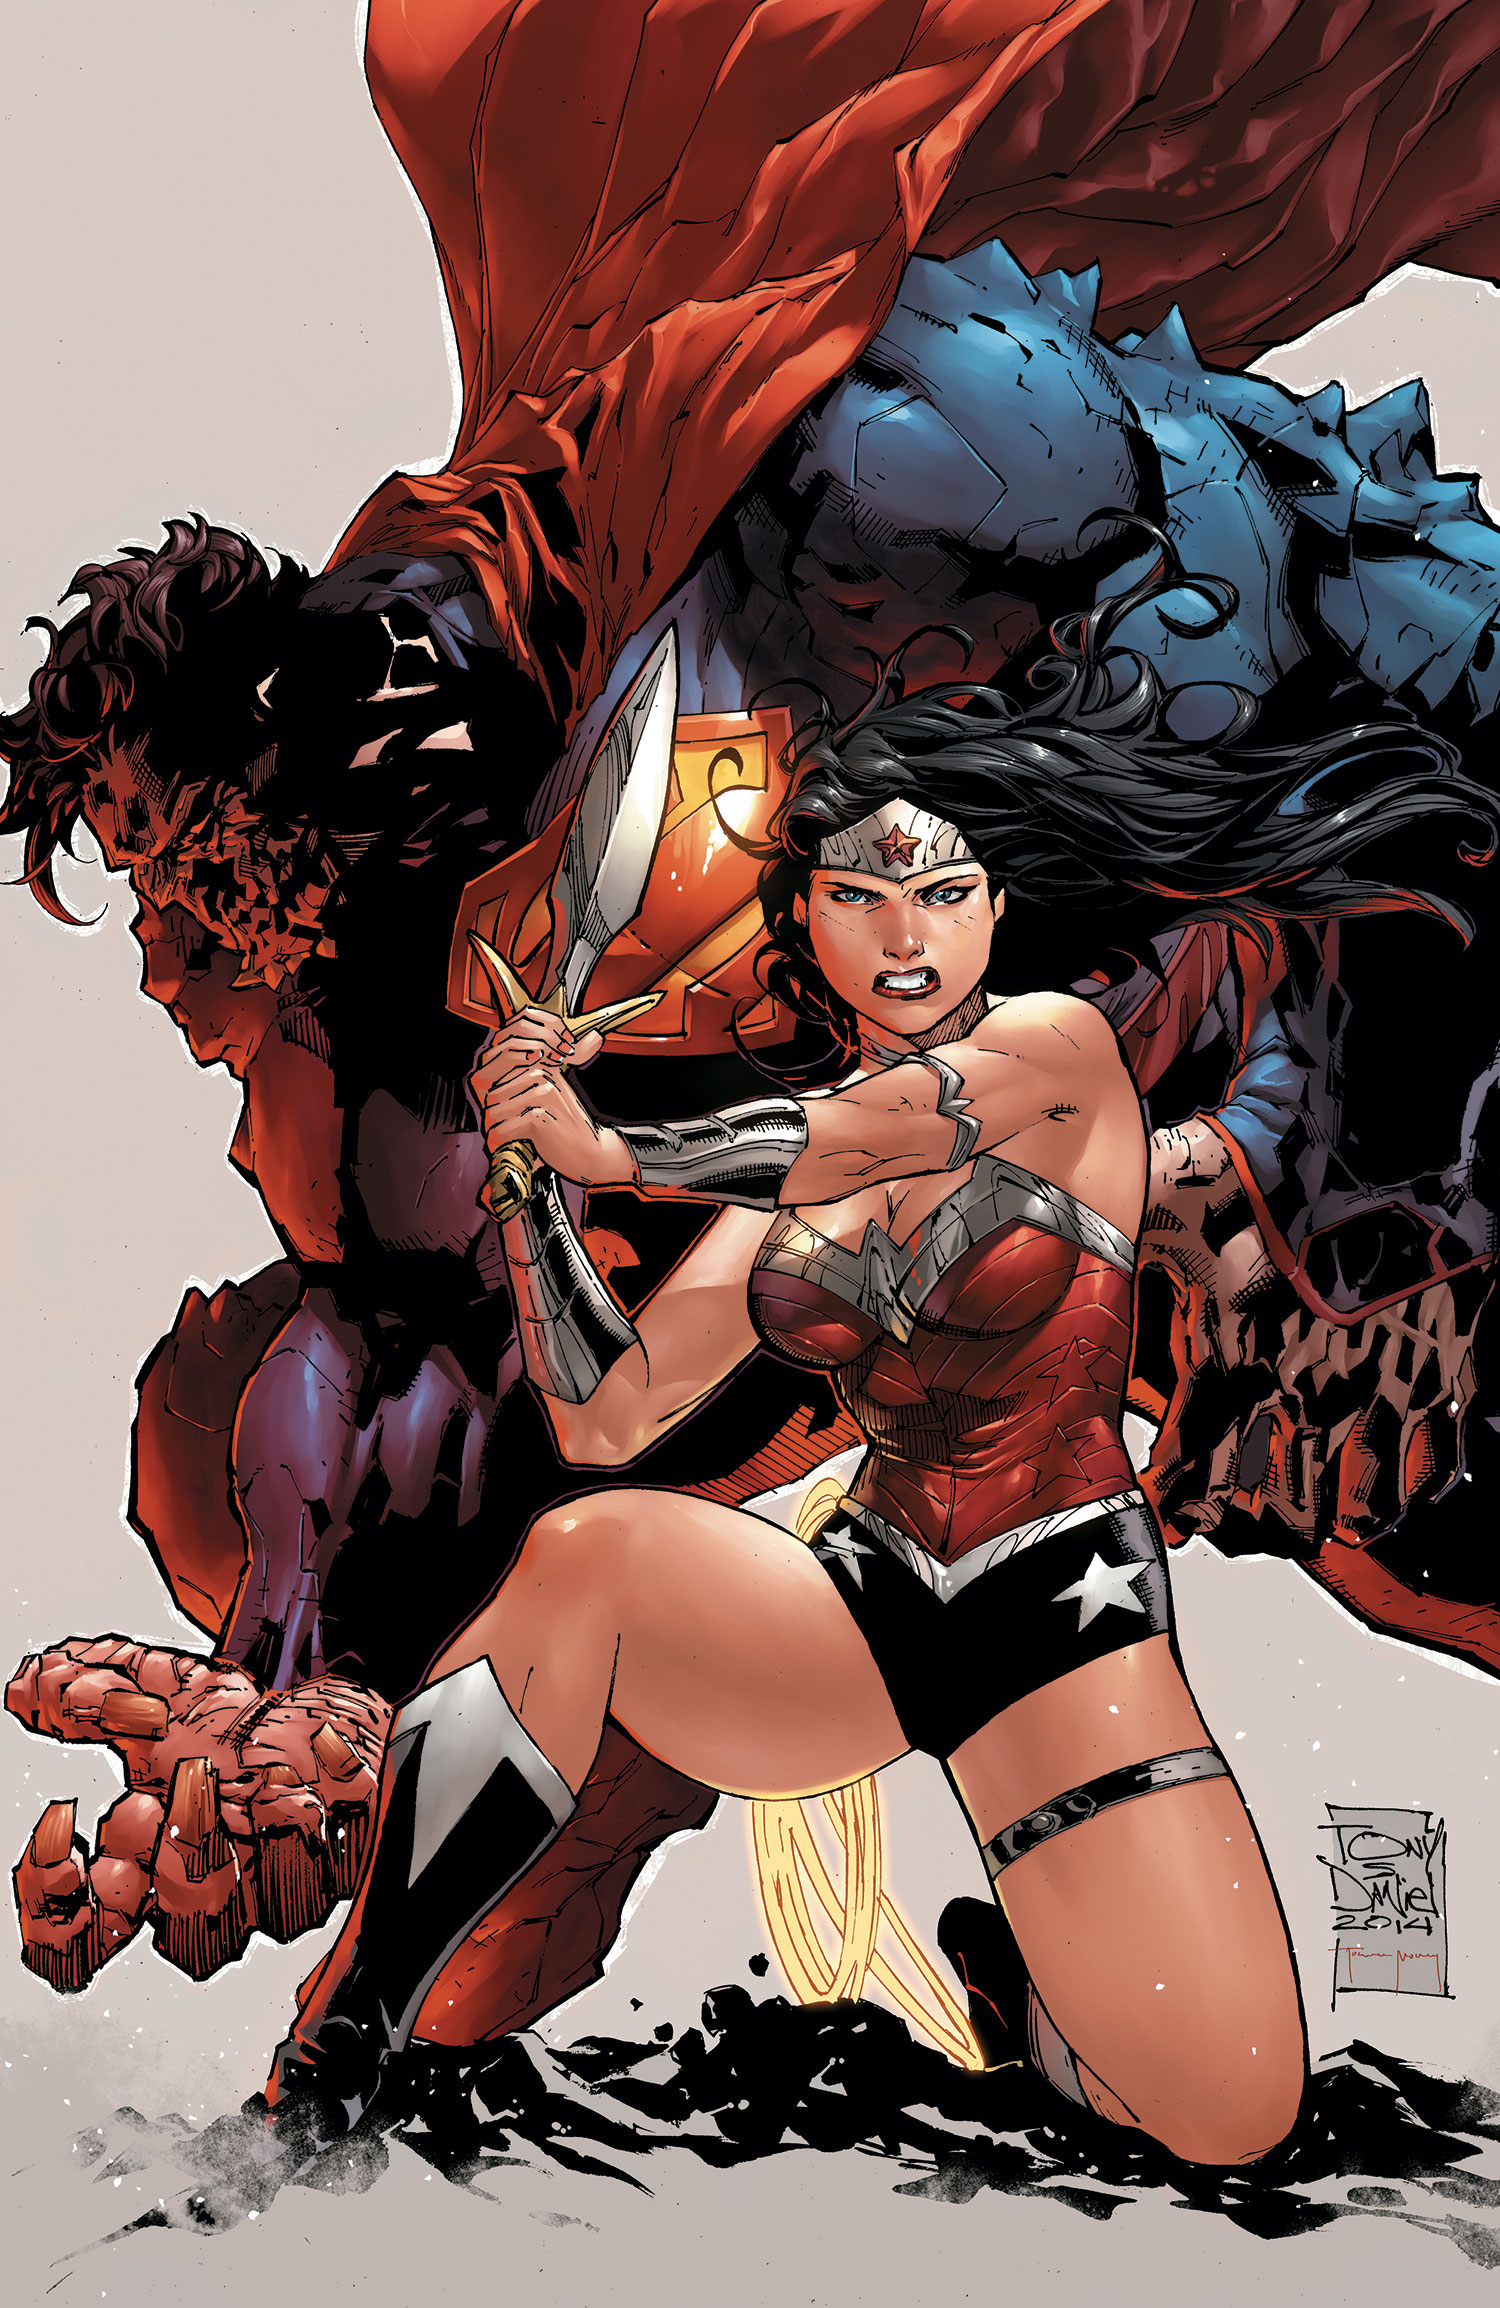 Superman Wonder Woman Vol 1 8 Textless.jpg